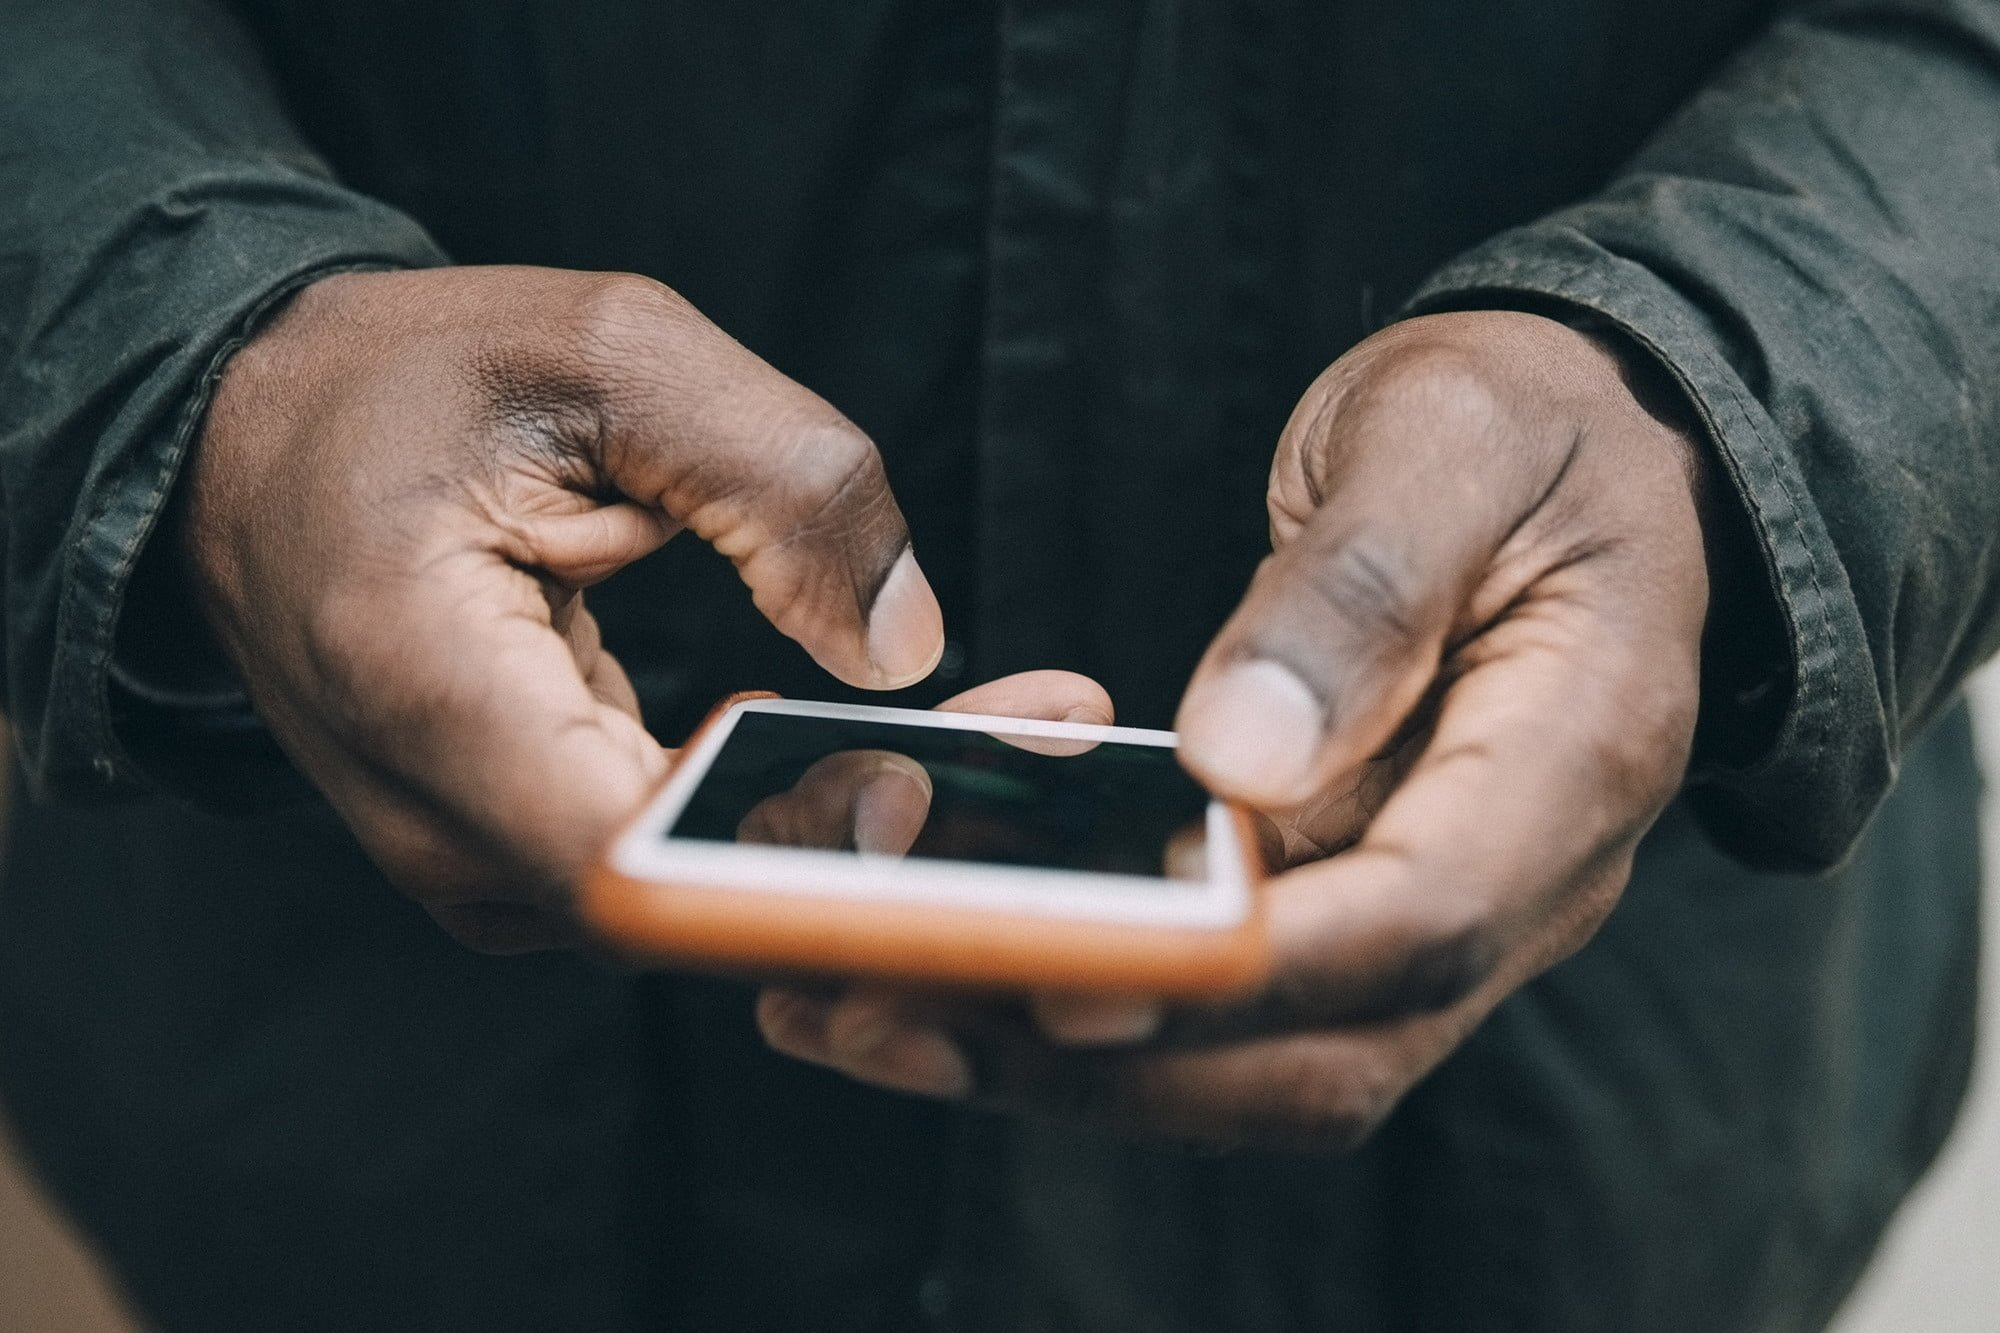 RCS Messaging: What Is It And Why Are U.S. Carriers Embracing It?